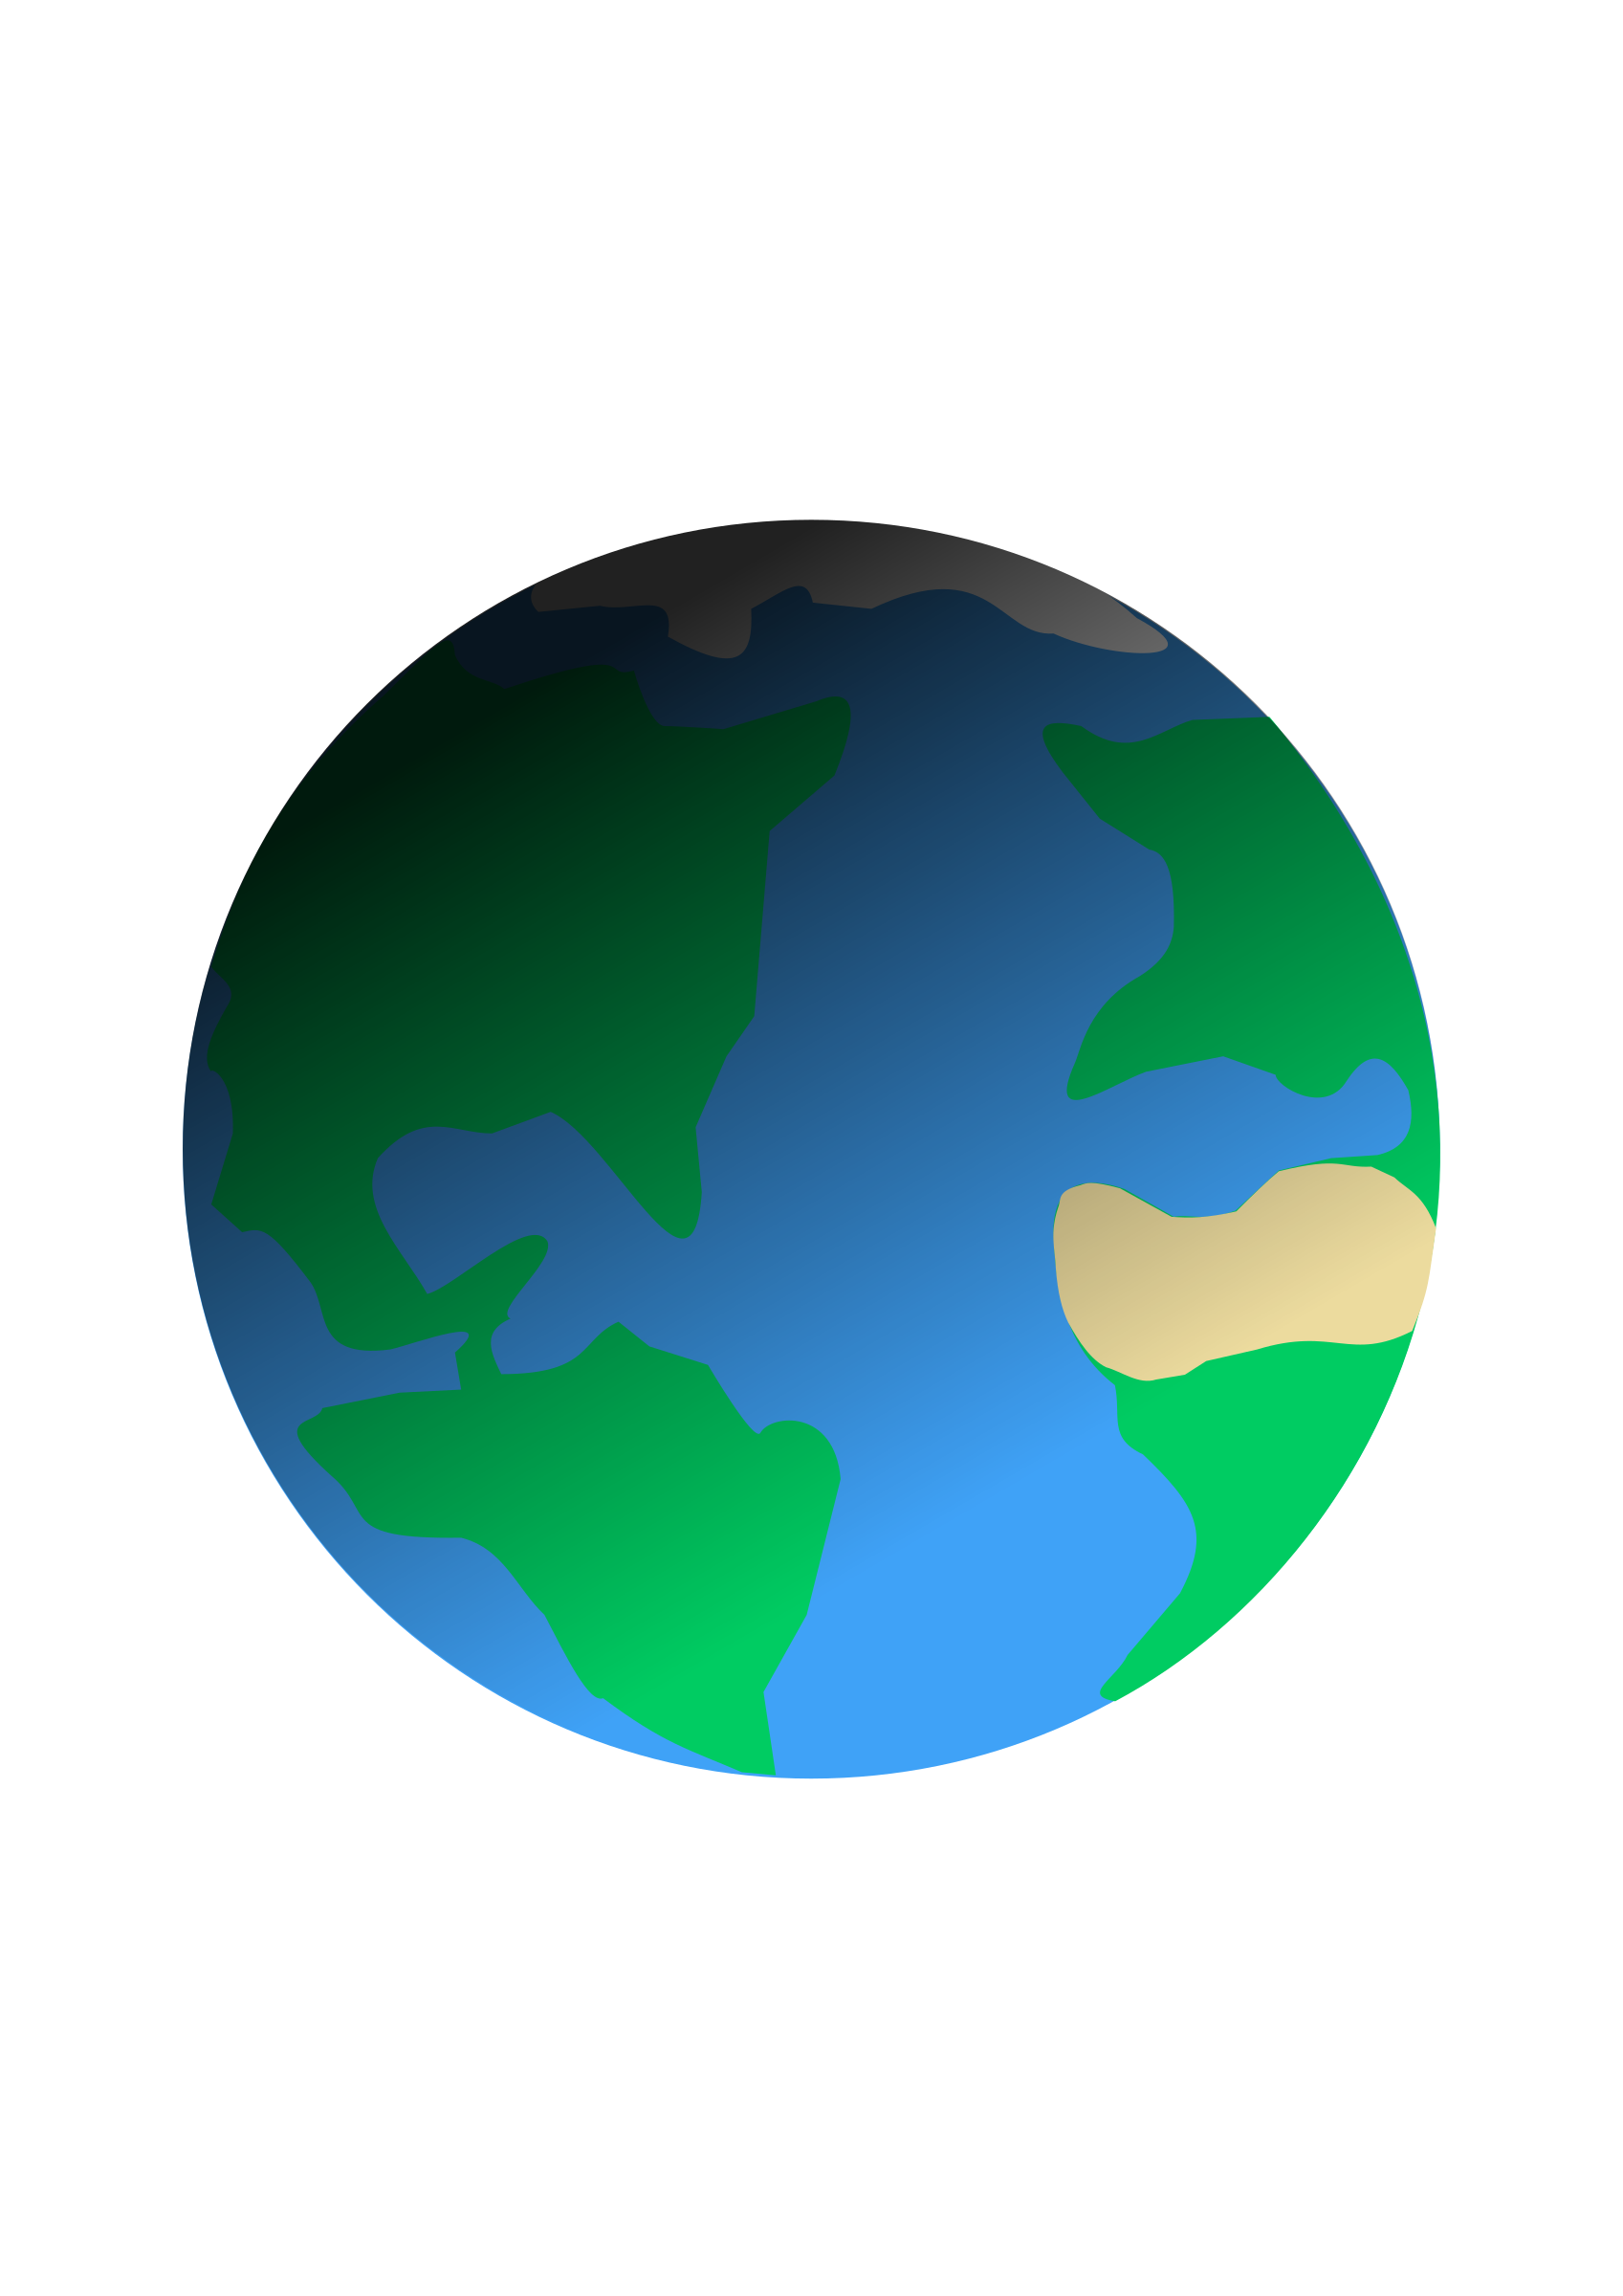 planets clipart tierra